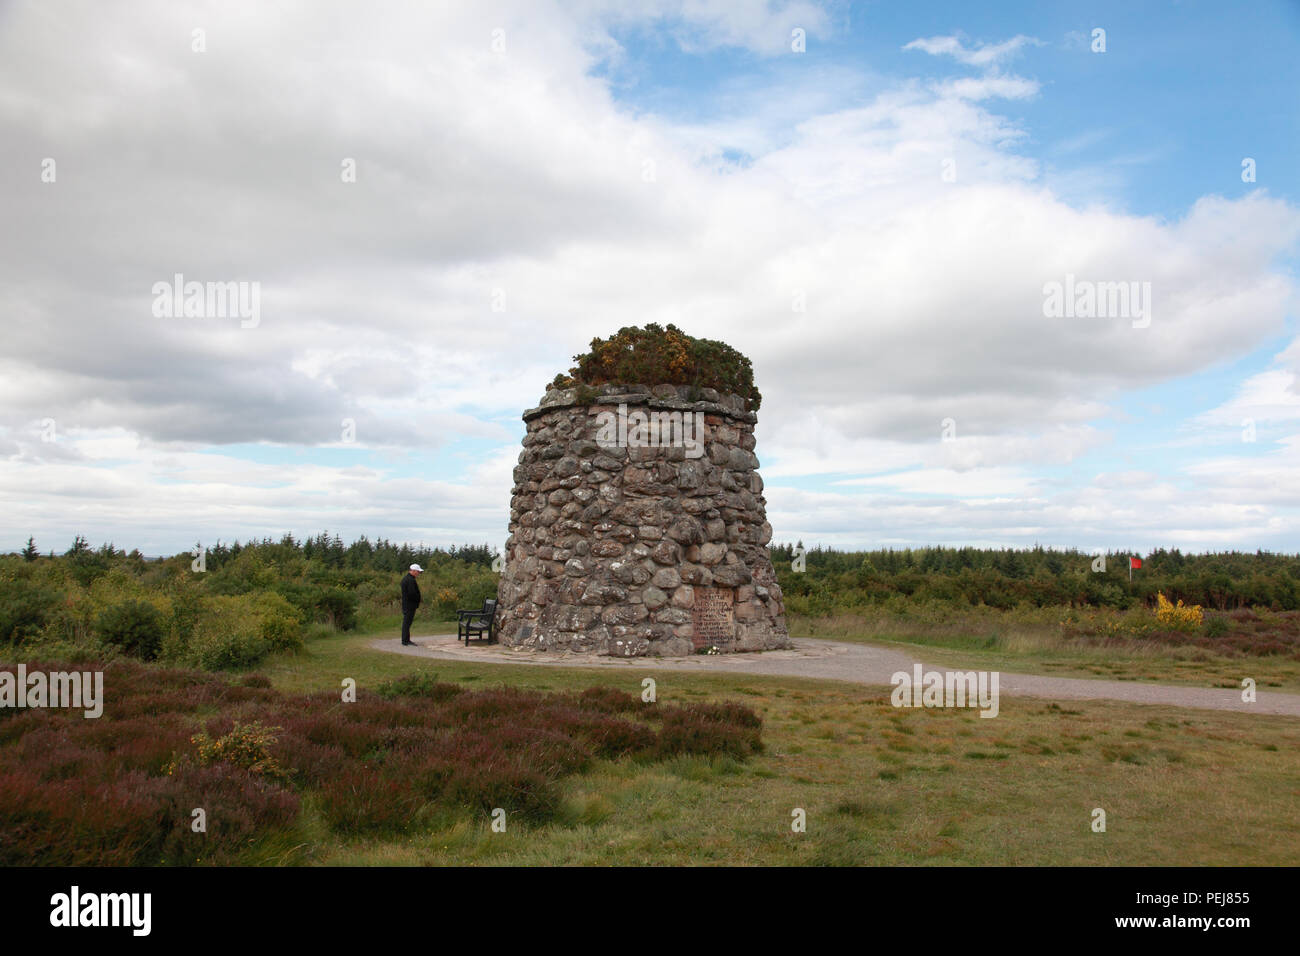 The memorial cairn at the site of the Battle of Culloden in April,1746 - Stock Image